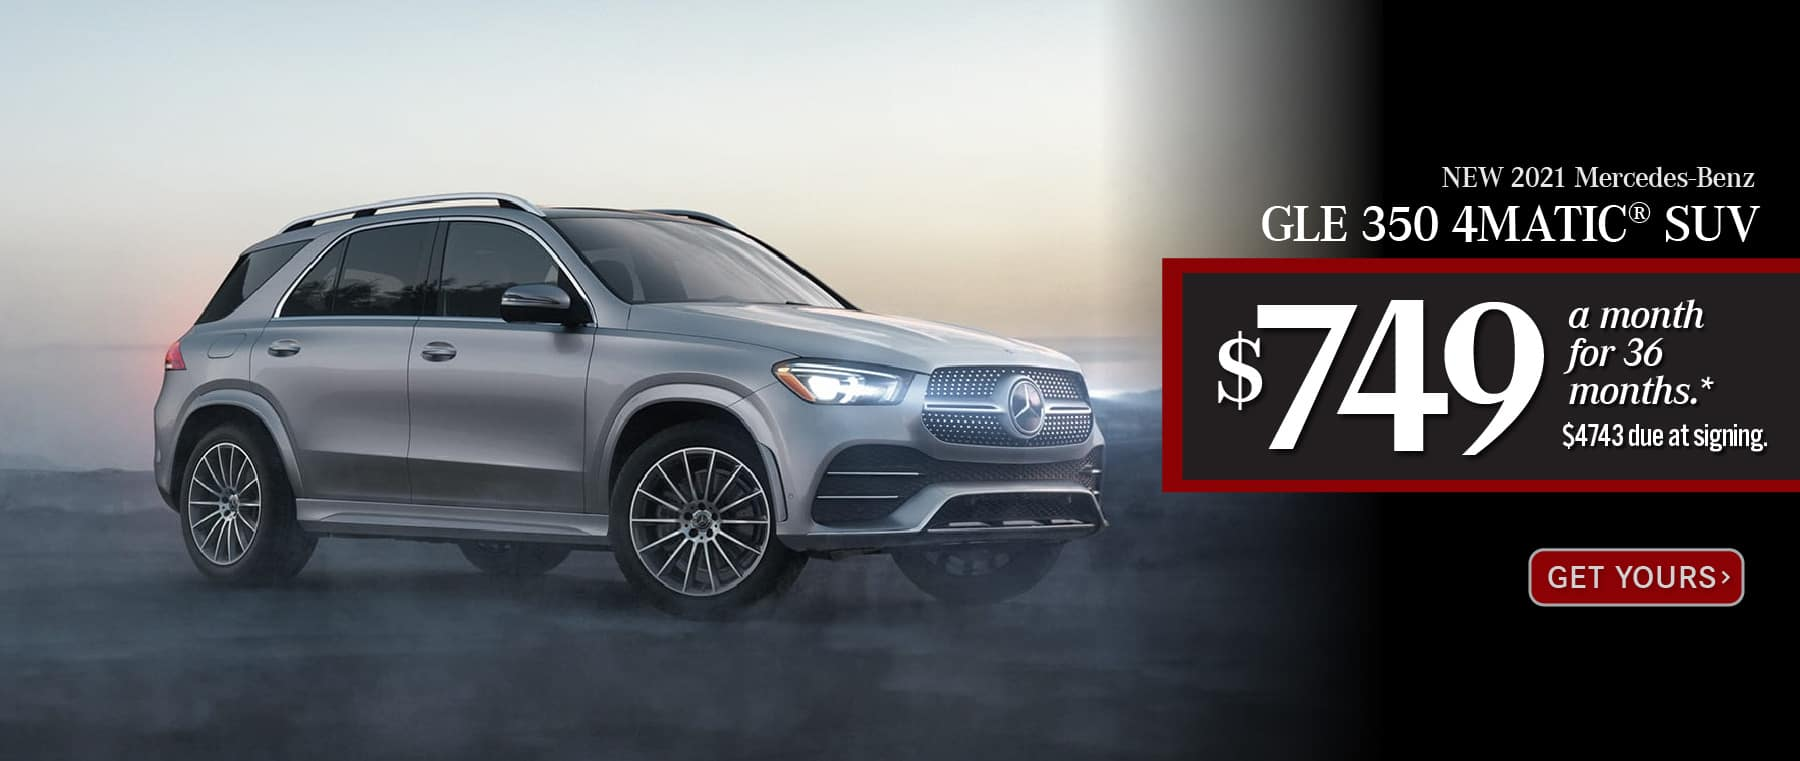 New 2021 Mercedes-Benz GLE 350 4MATIC® Lease for only: $749 a month for 36 months. $4743 due at signing. Get Yours.